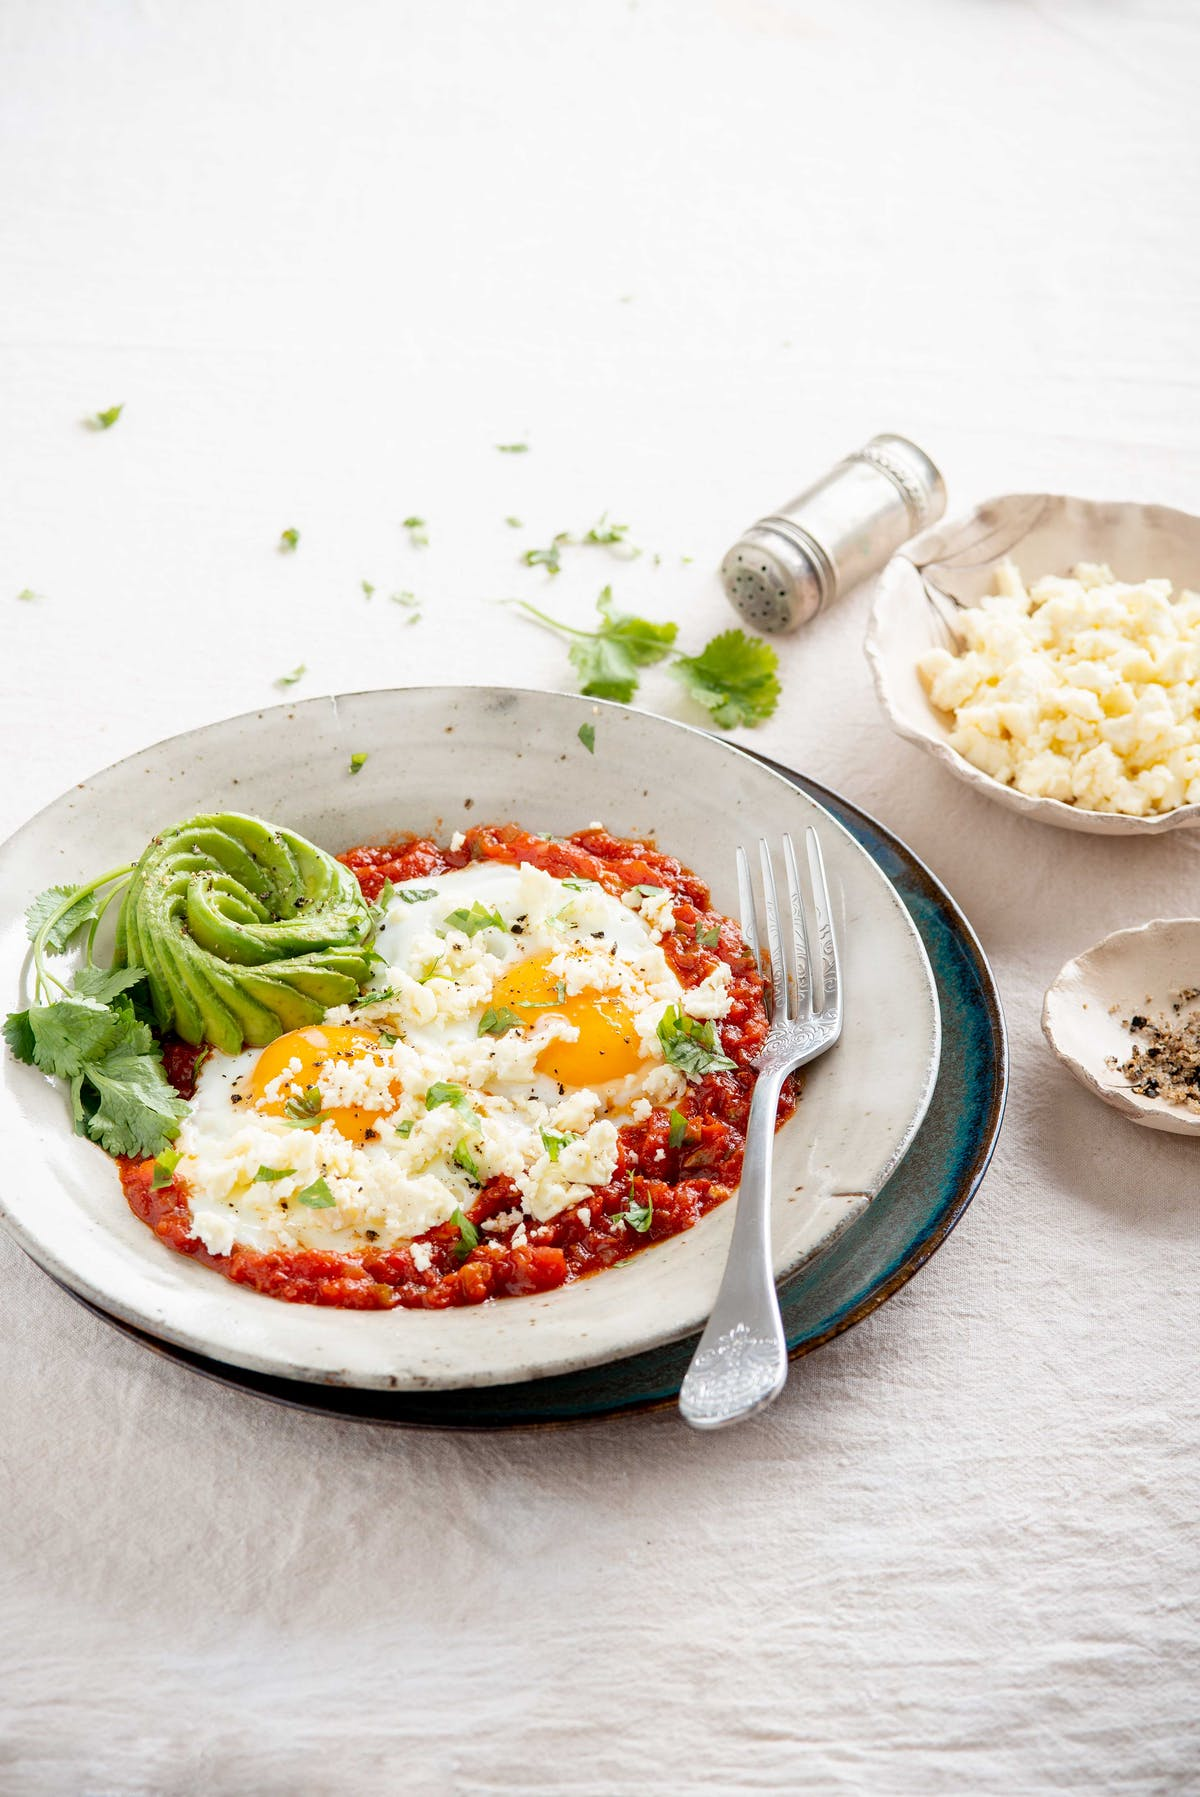 Clara's delicious low-carb huevos rancheros